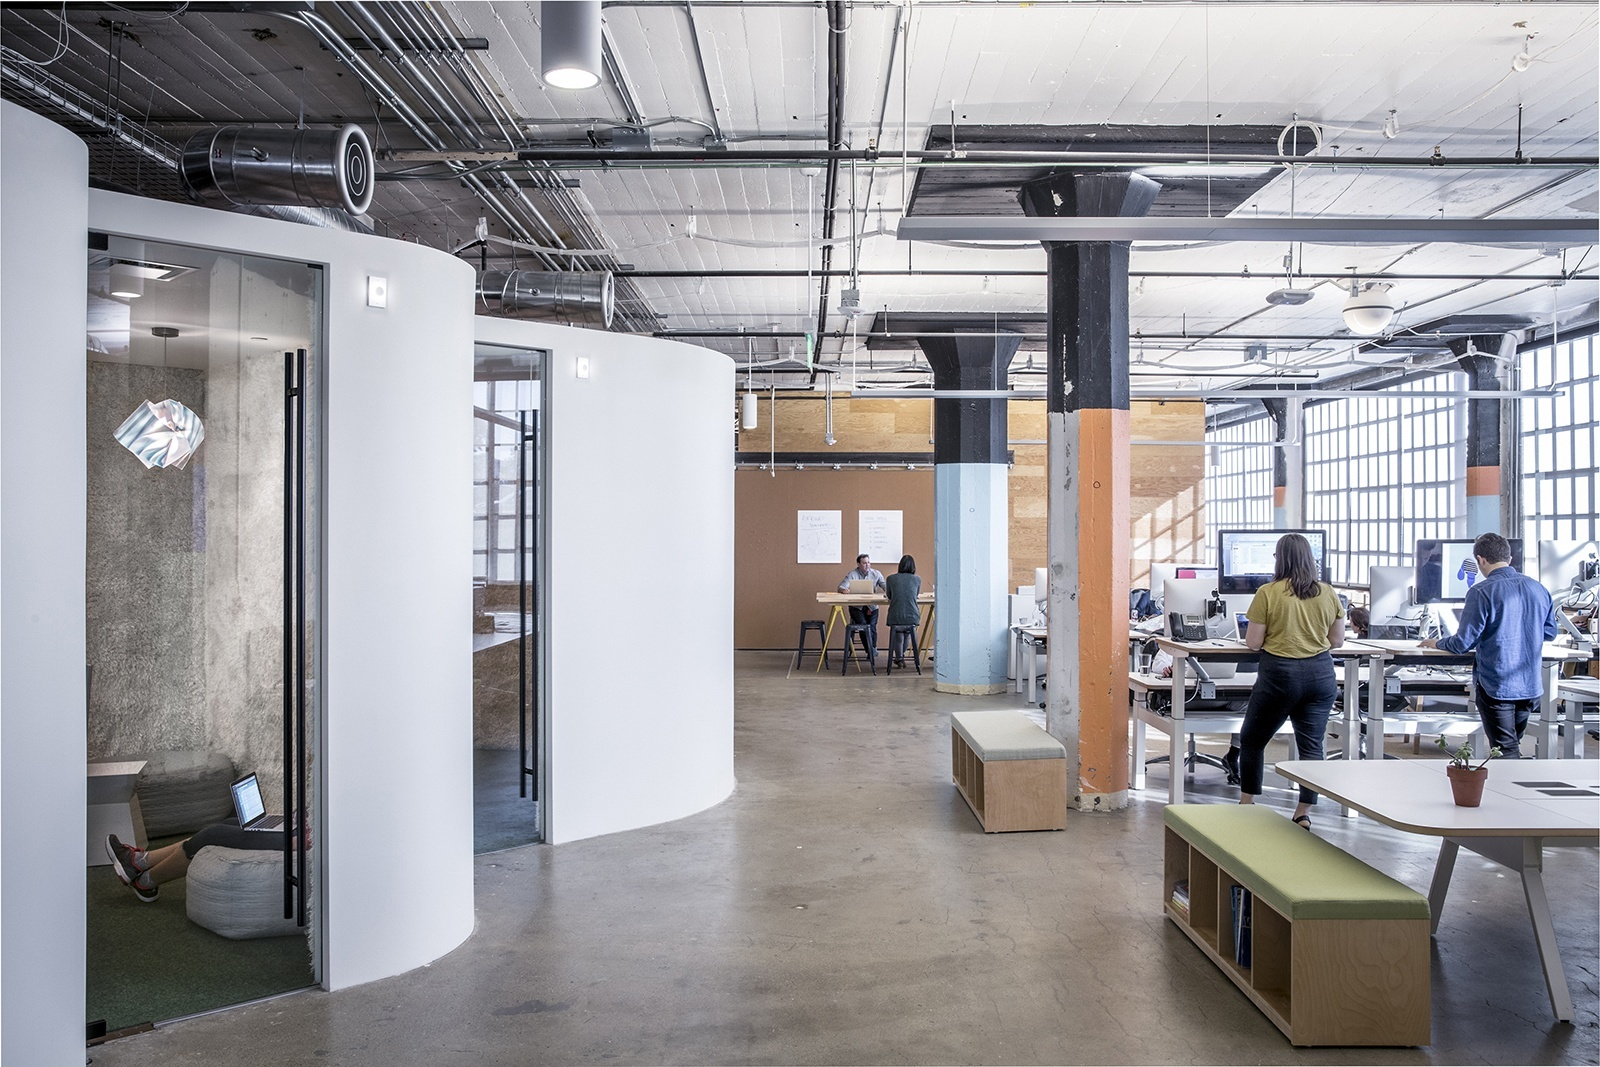 Office Design San Francisco A Tour Of Airbnb's New San Francisco Headquarters  Officelovin'